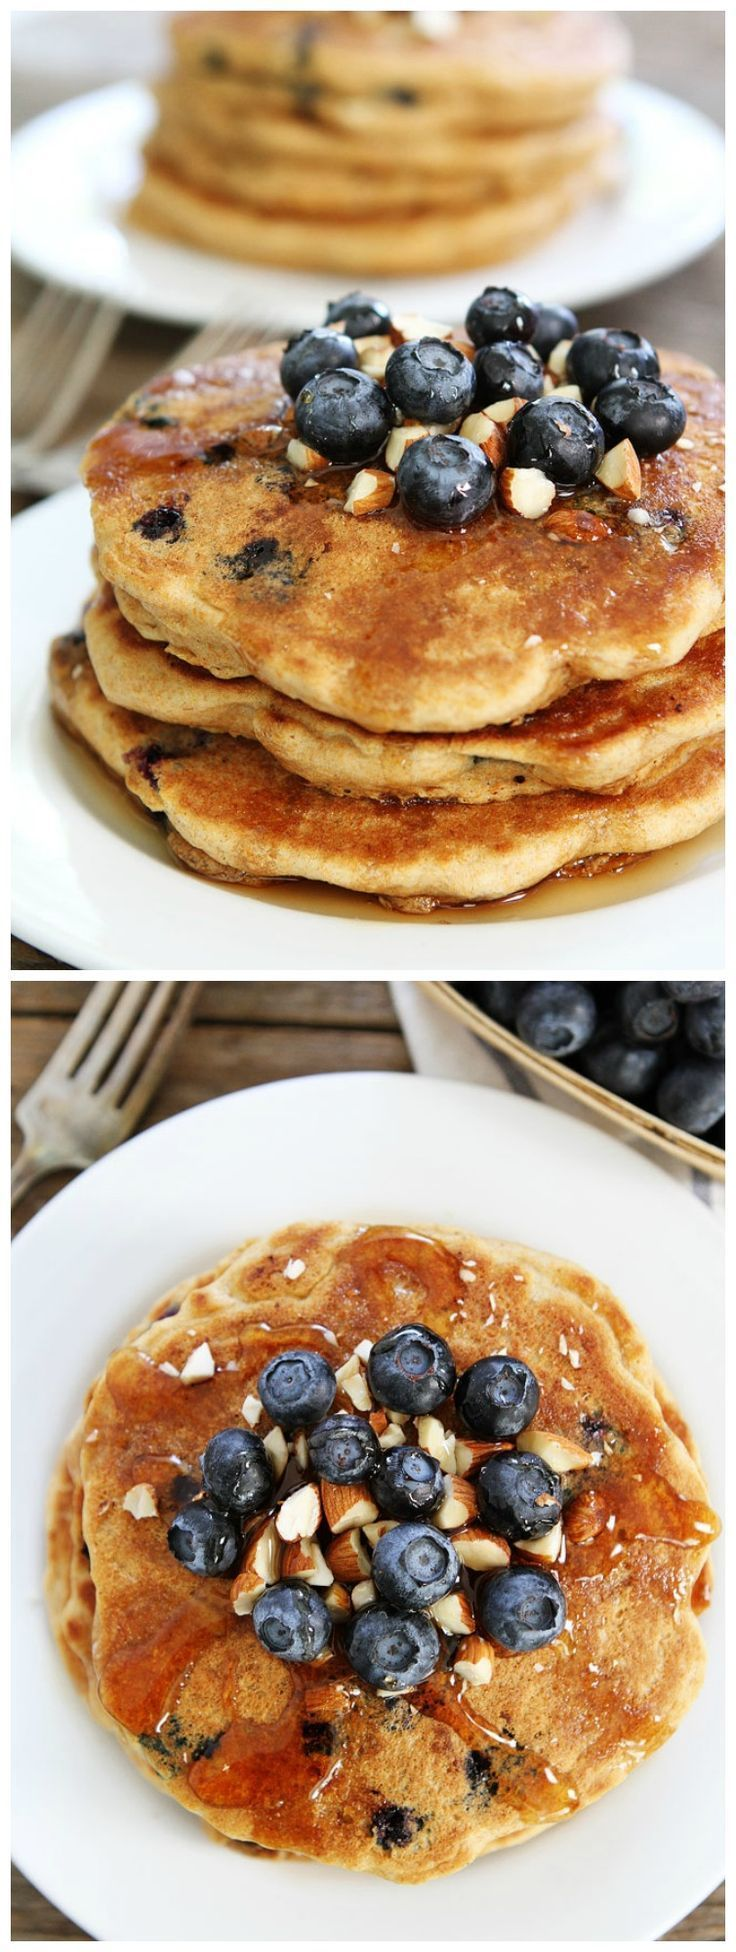 Blueberry Almond Pancake Recipe - Whole wheat pancakes with blueberries and almonds. A great way to start the day!